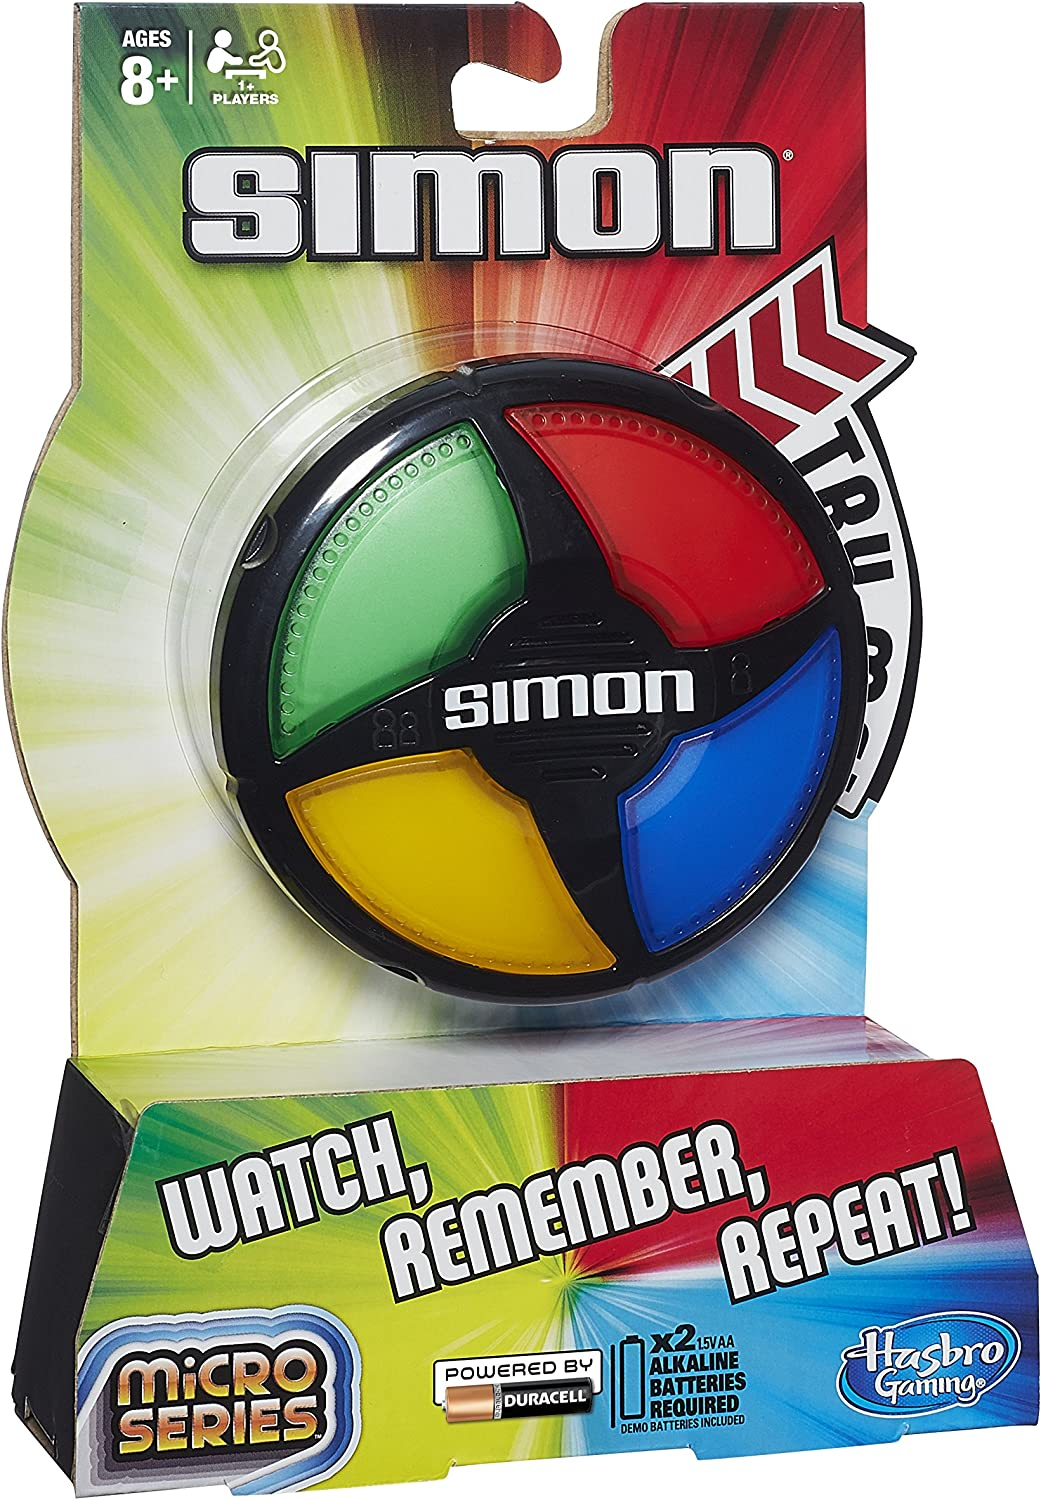 Hasbro Gaming - Simon Micro Series, Juego de Mesa (B0640): Amazon ...